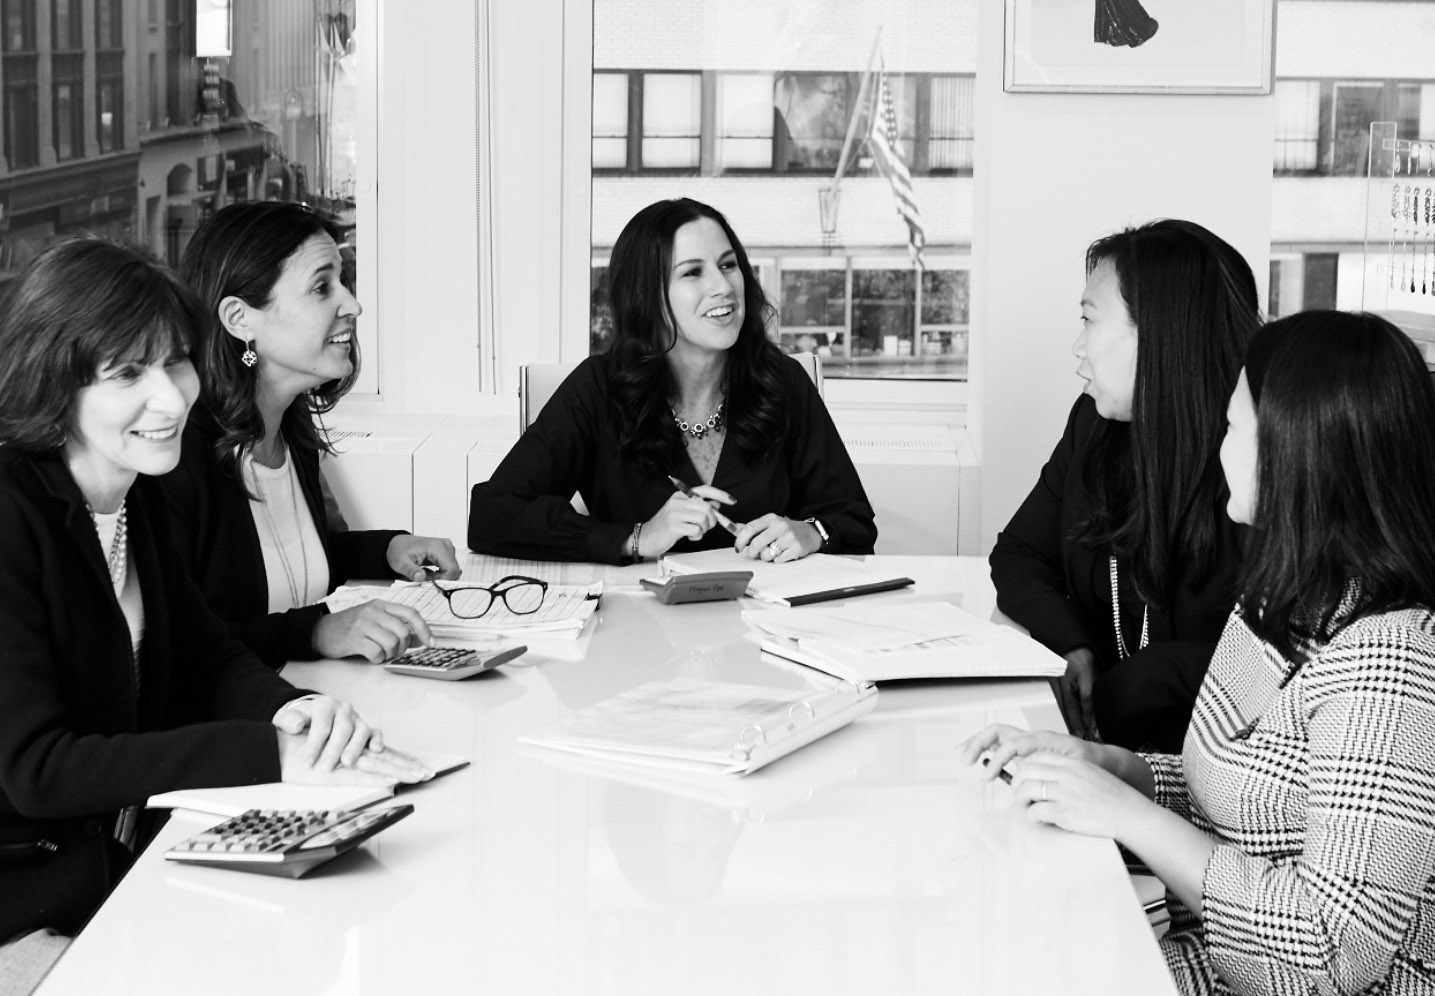 Group of colleagues from The Jewelry Group having a business meeting in the jewelry showroom